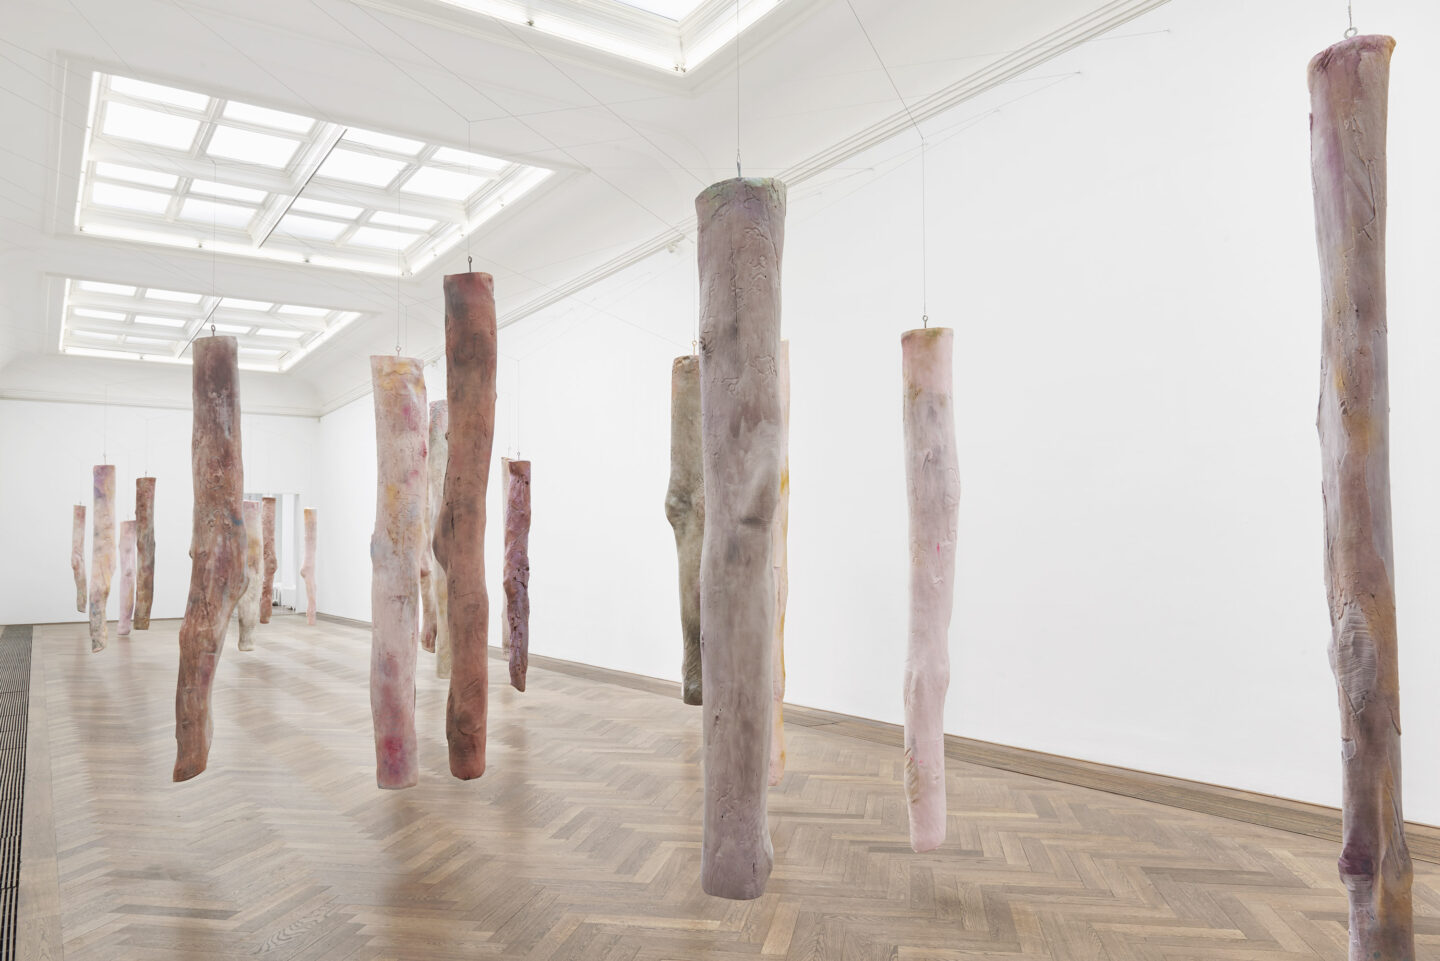 Exhibition View Kaari Upson Soloshow «Go Back the Way You Came; view on Mother's Legs, 2018–2019» at Kunsthalle Basel, Basel, 2019 / Photo: Philipp Hänger / Courtesy: the artist and Kunsthalle Basel